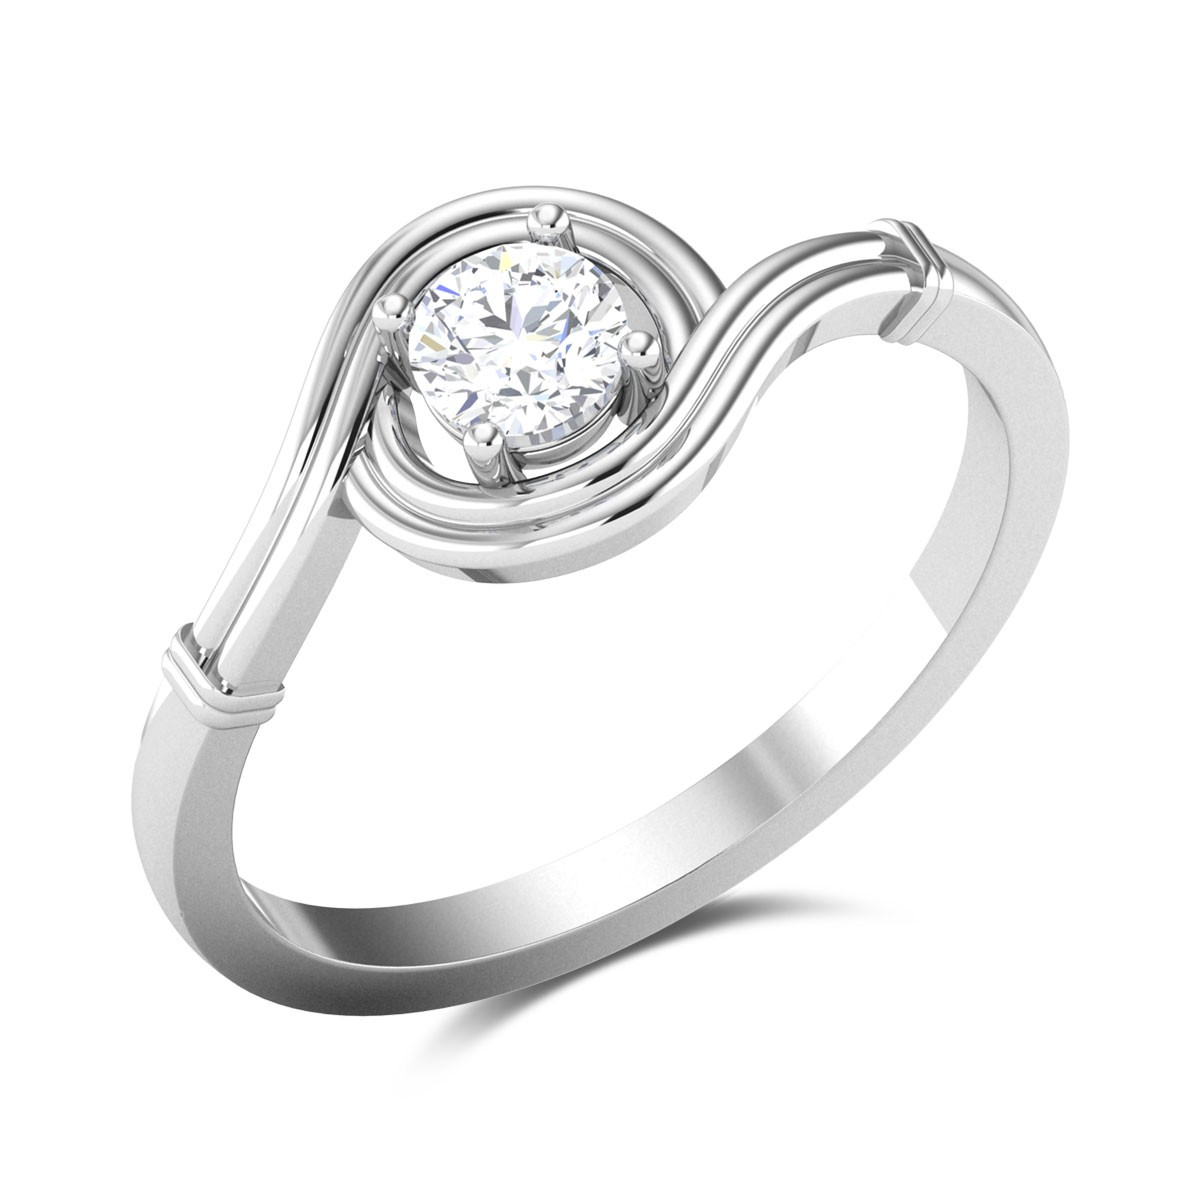 Lovell 4 Prong Swirl Solitaire Ring